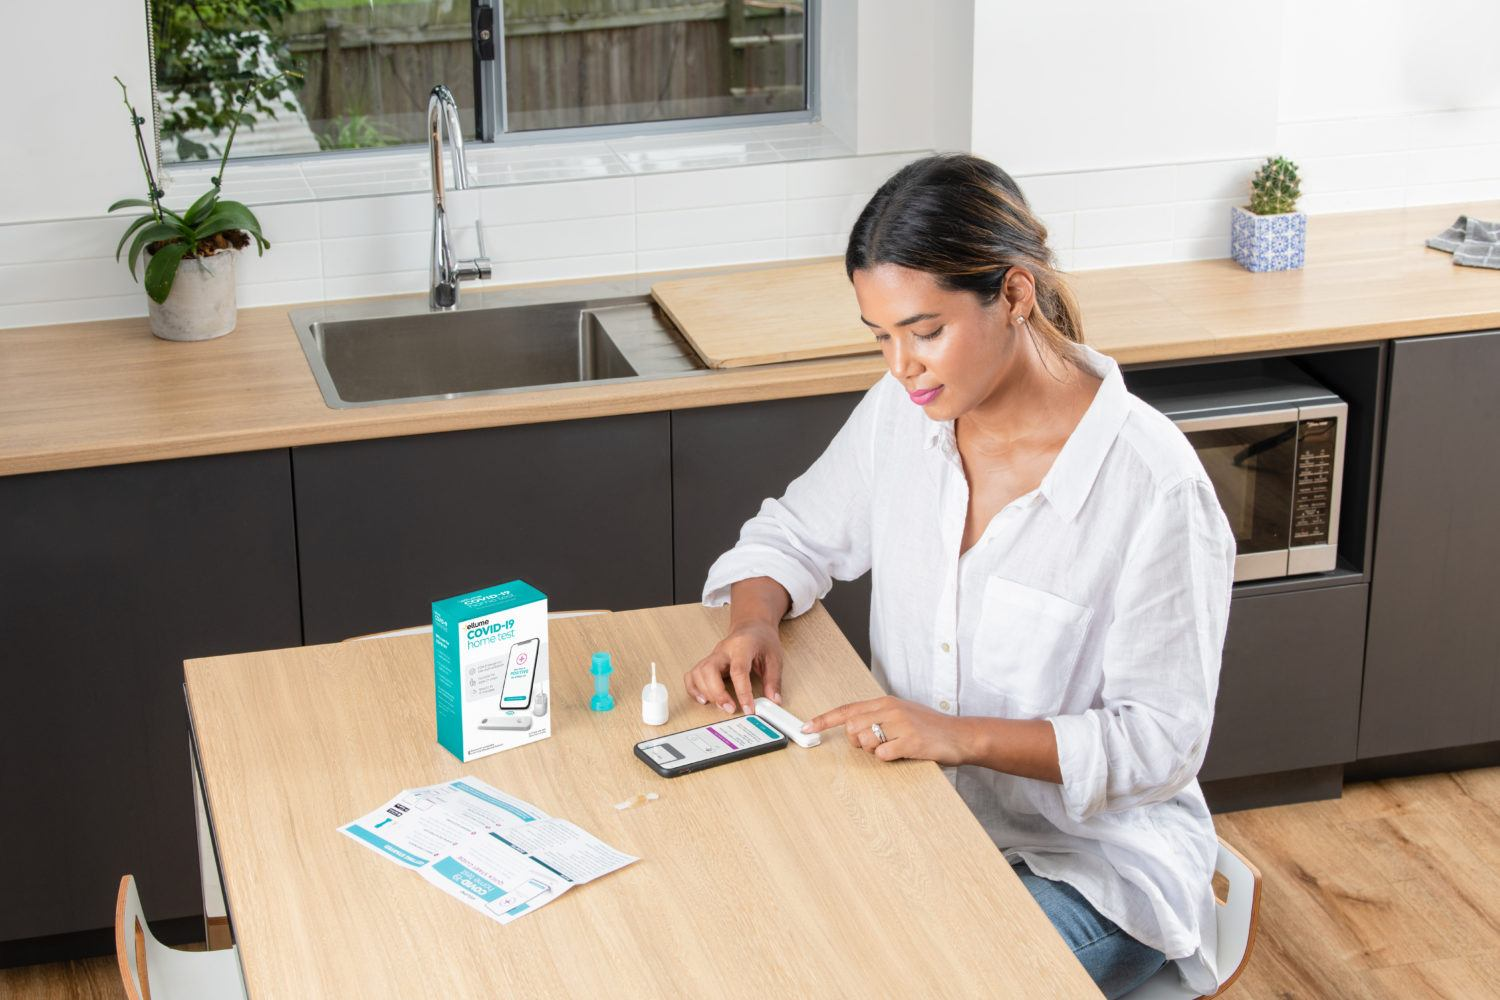 FDA Authorizes Ellume COVID-19 Home Test as First Over-the-Counter Fully At-Home Diagnostic Test